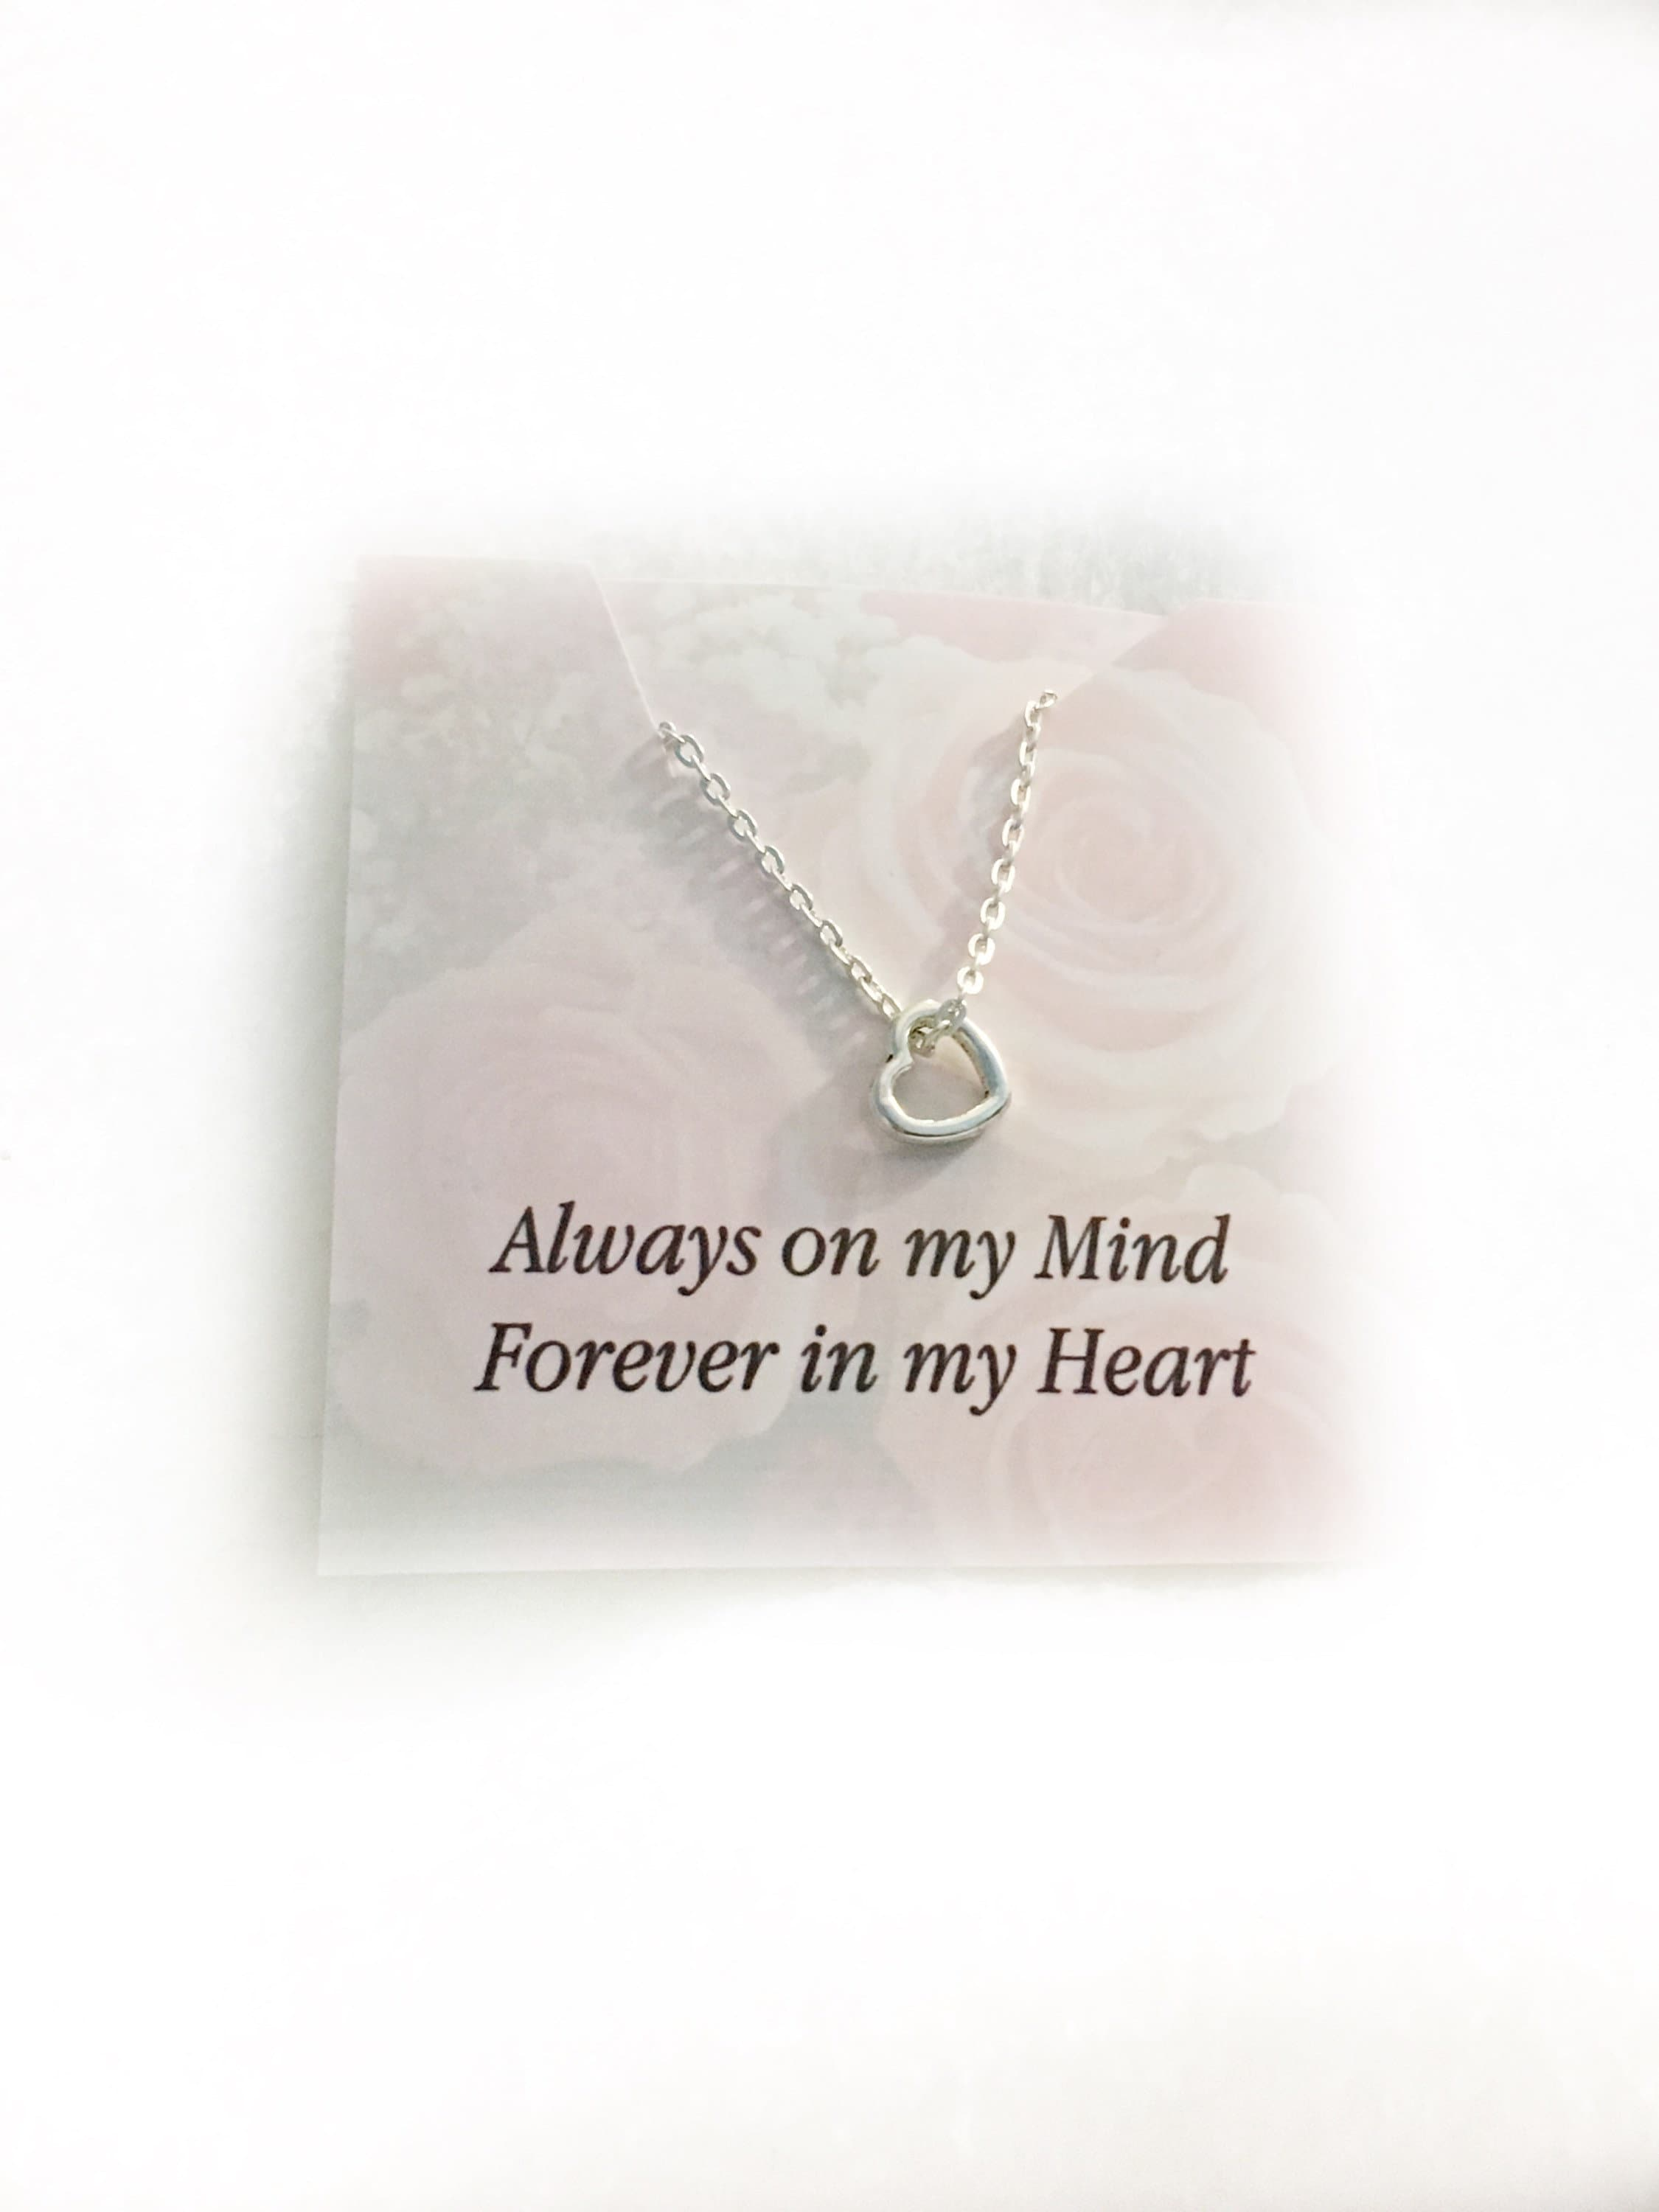 necklace custom il listing horsehair sombra memorial fullxfull zoom ihyj